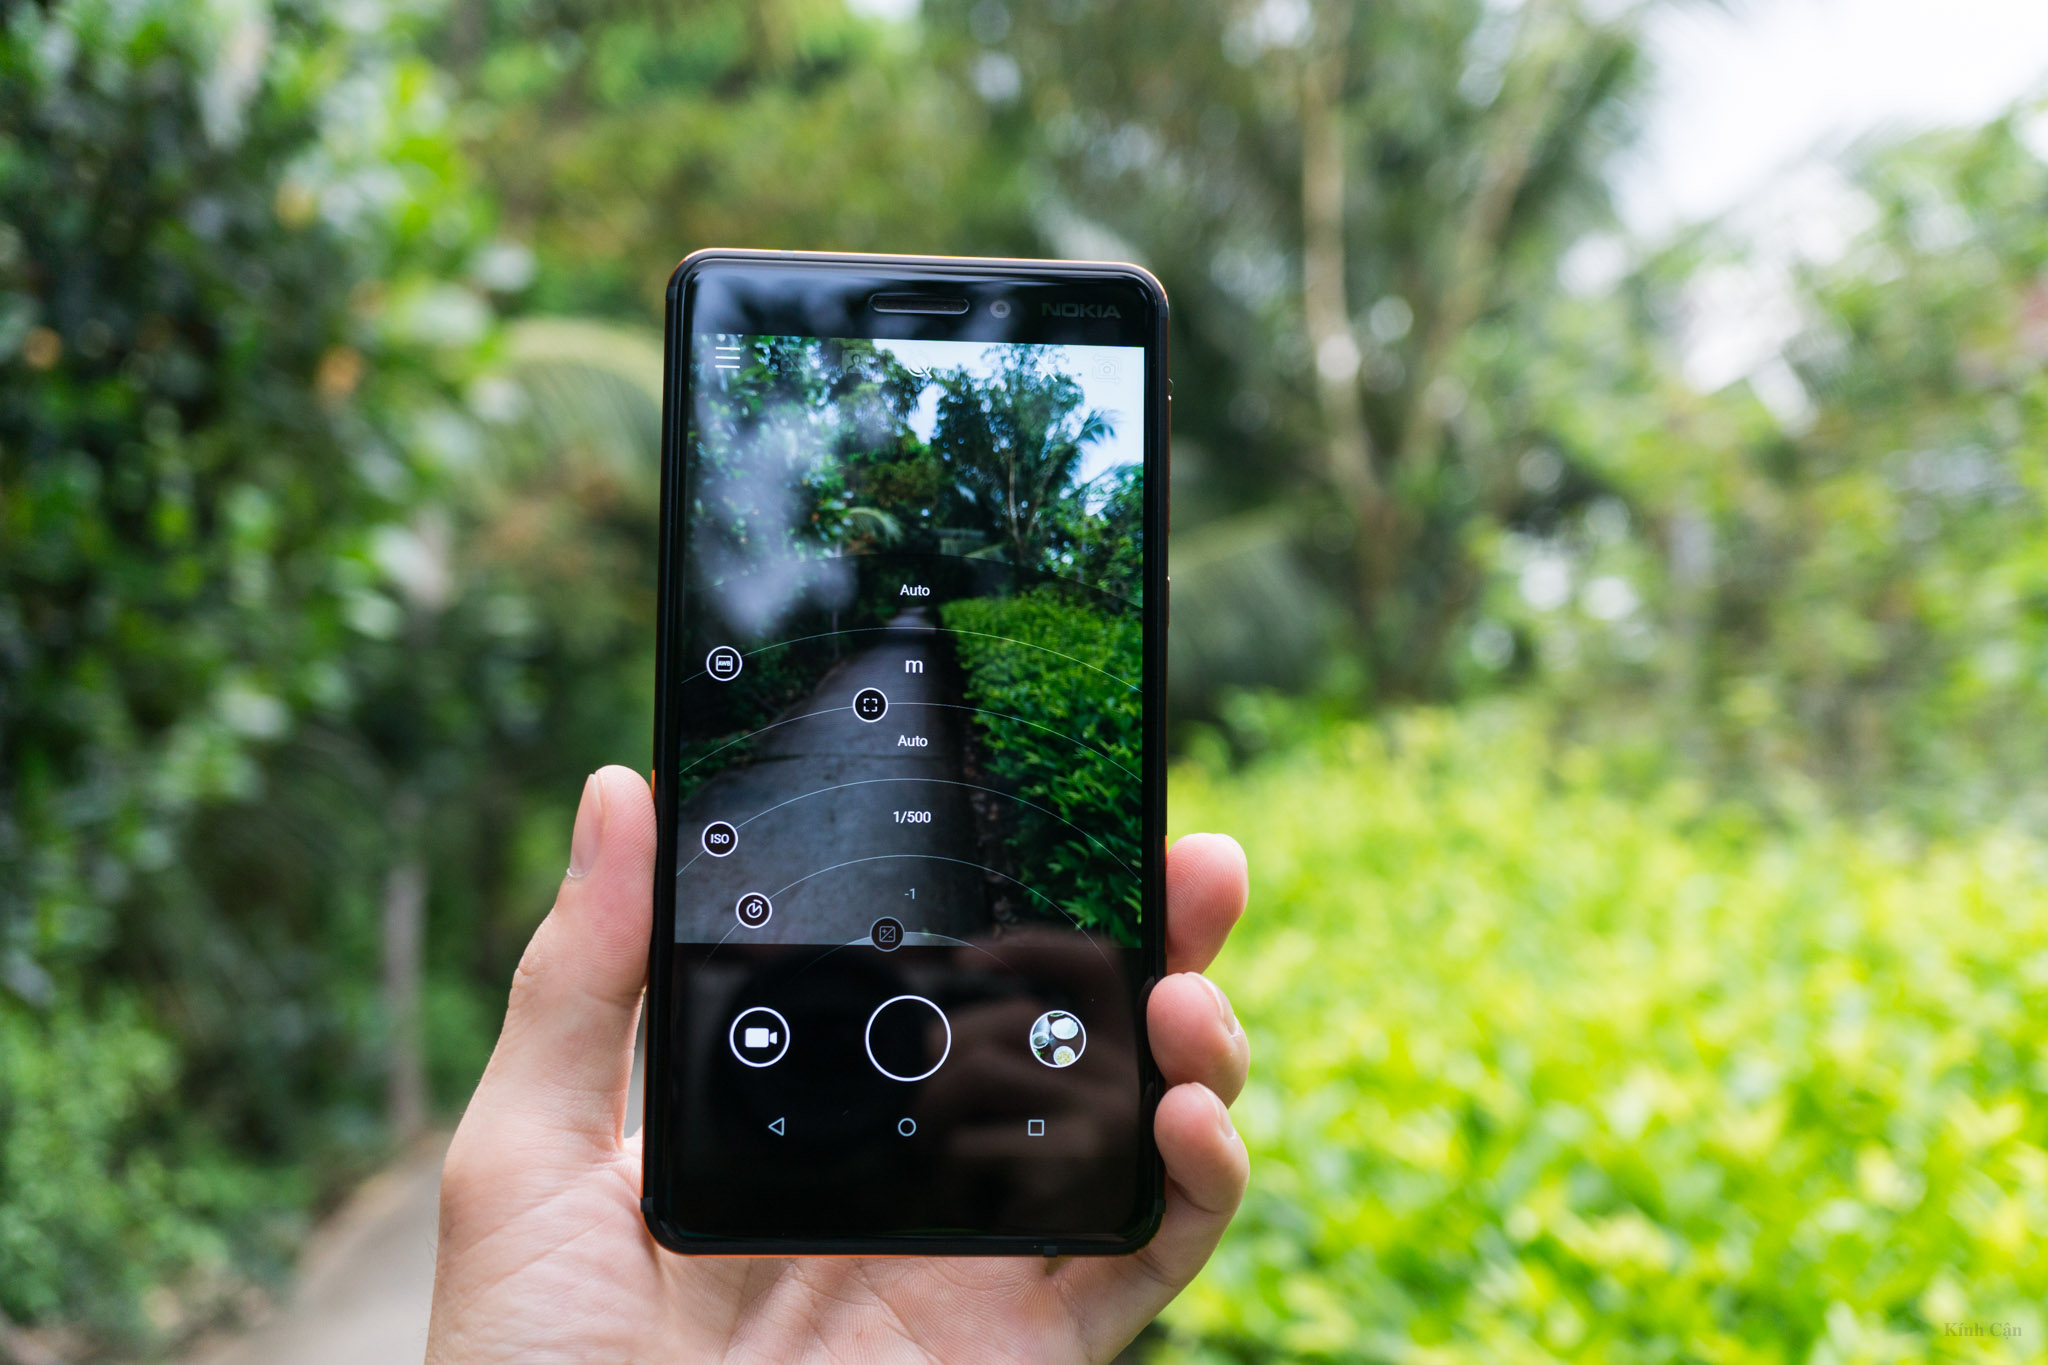 Android P Nokia 6 mới-3.jpg